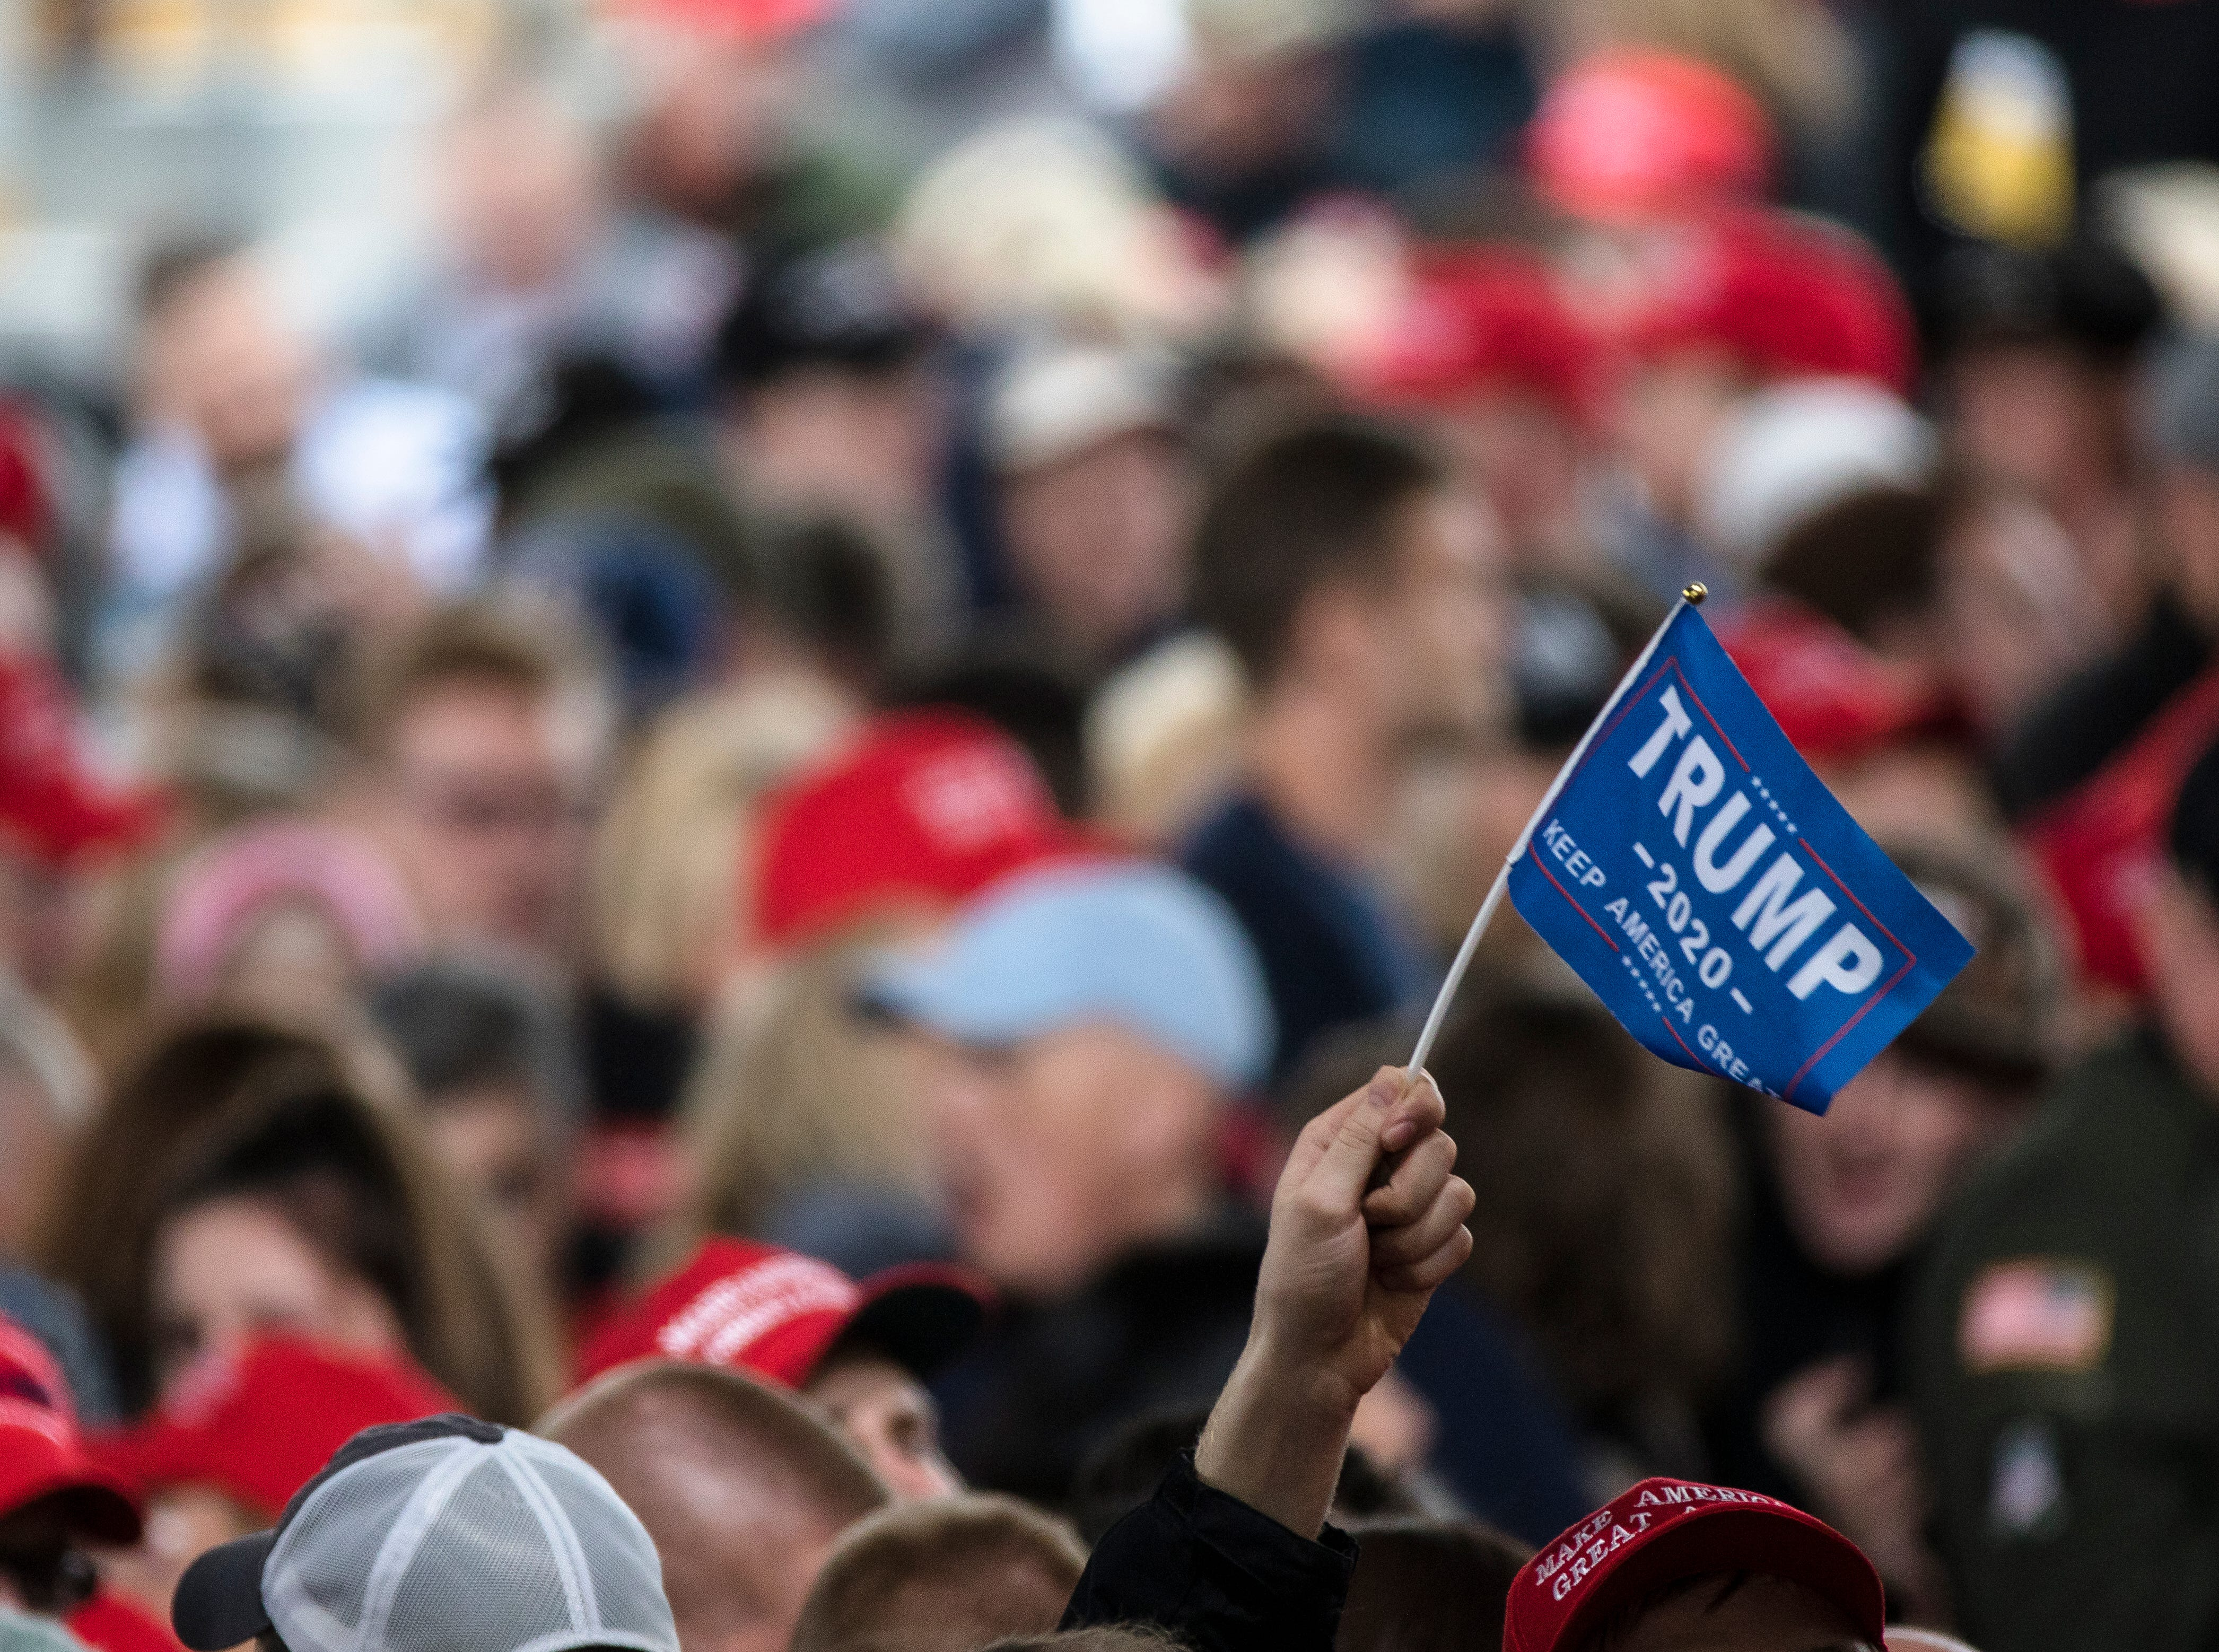 A person waives a flag while waiting for the President at President Donald J. TrumpÕs Make America Great Again Rally in Lebanon, Ohio, on Friday, Oct. 12, 2018.